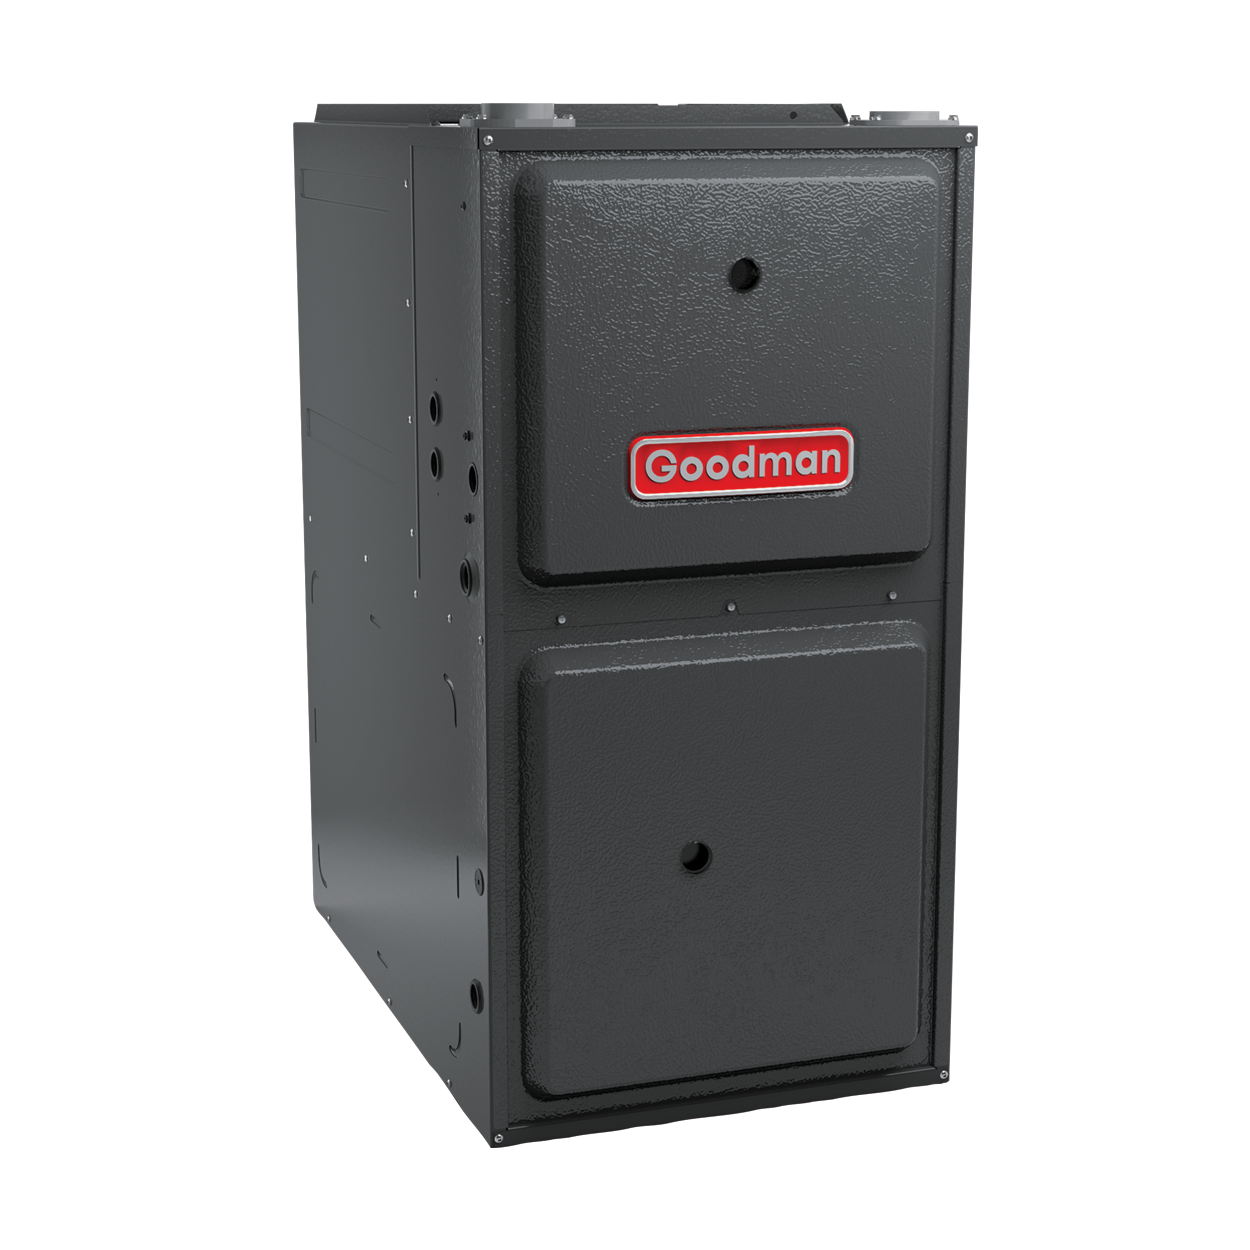 Modulating, Variable-Speed ECM Gas Furnace